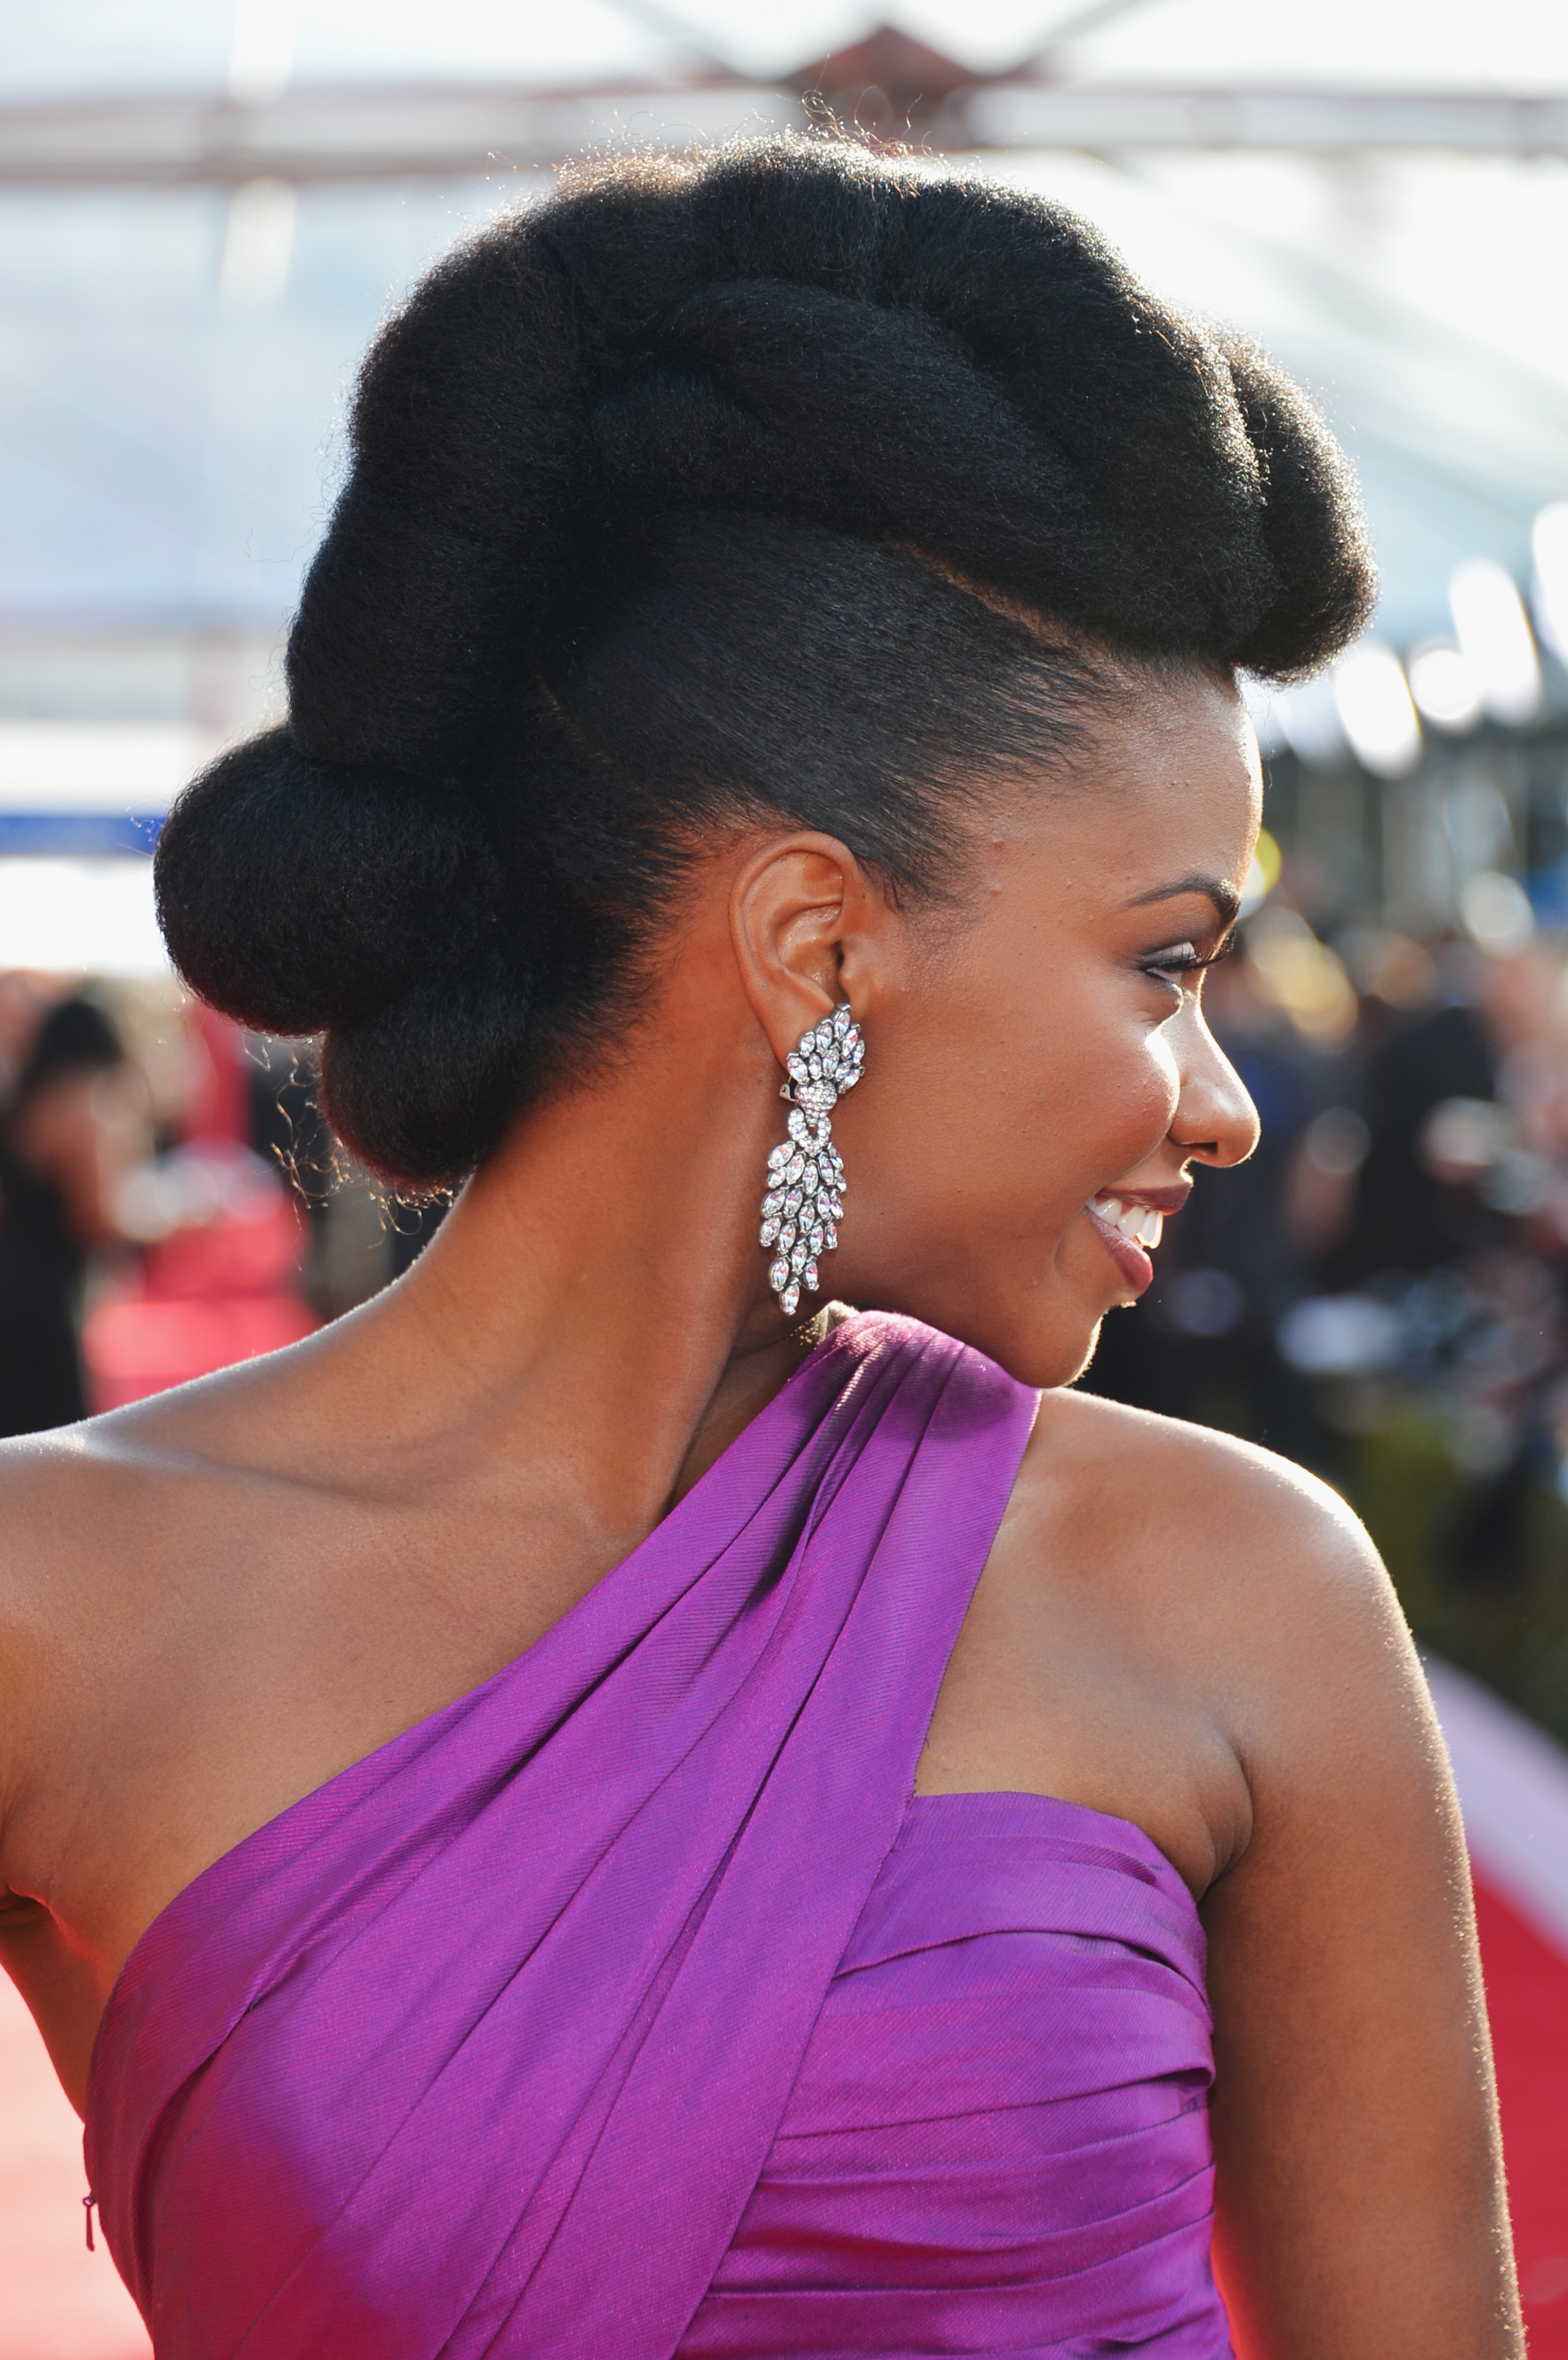 Styles For Natural Black Hair 25 Easy Natural Hairstyles For Black Women  Ideas For Short .